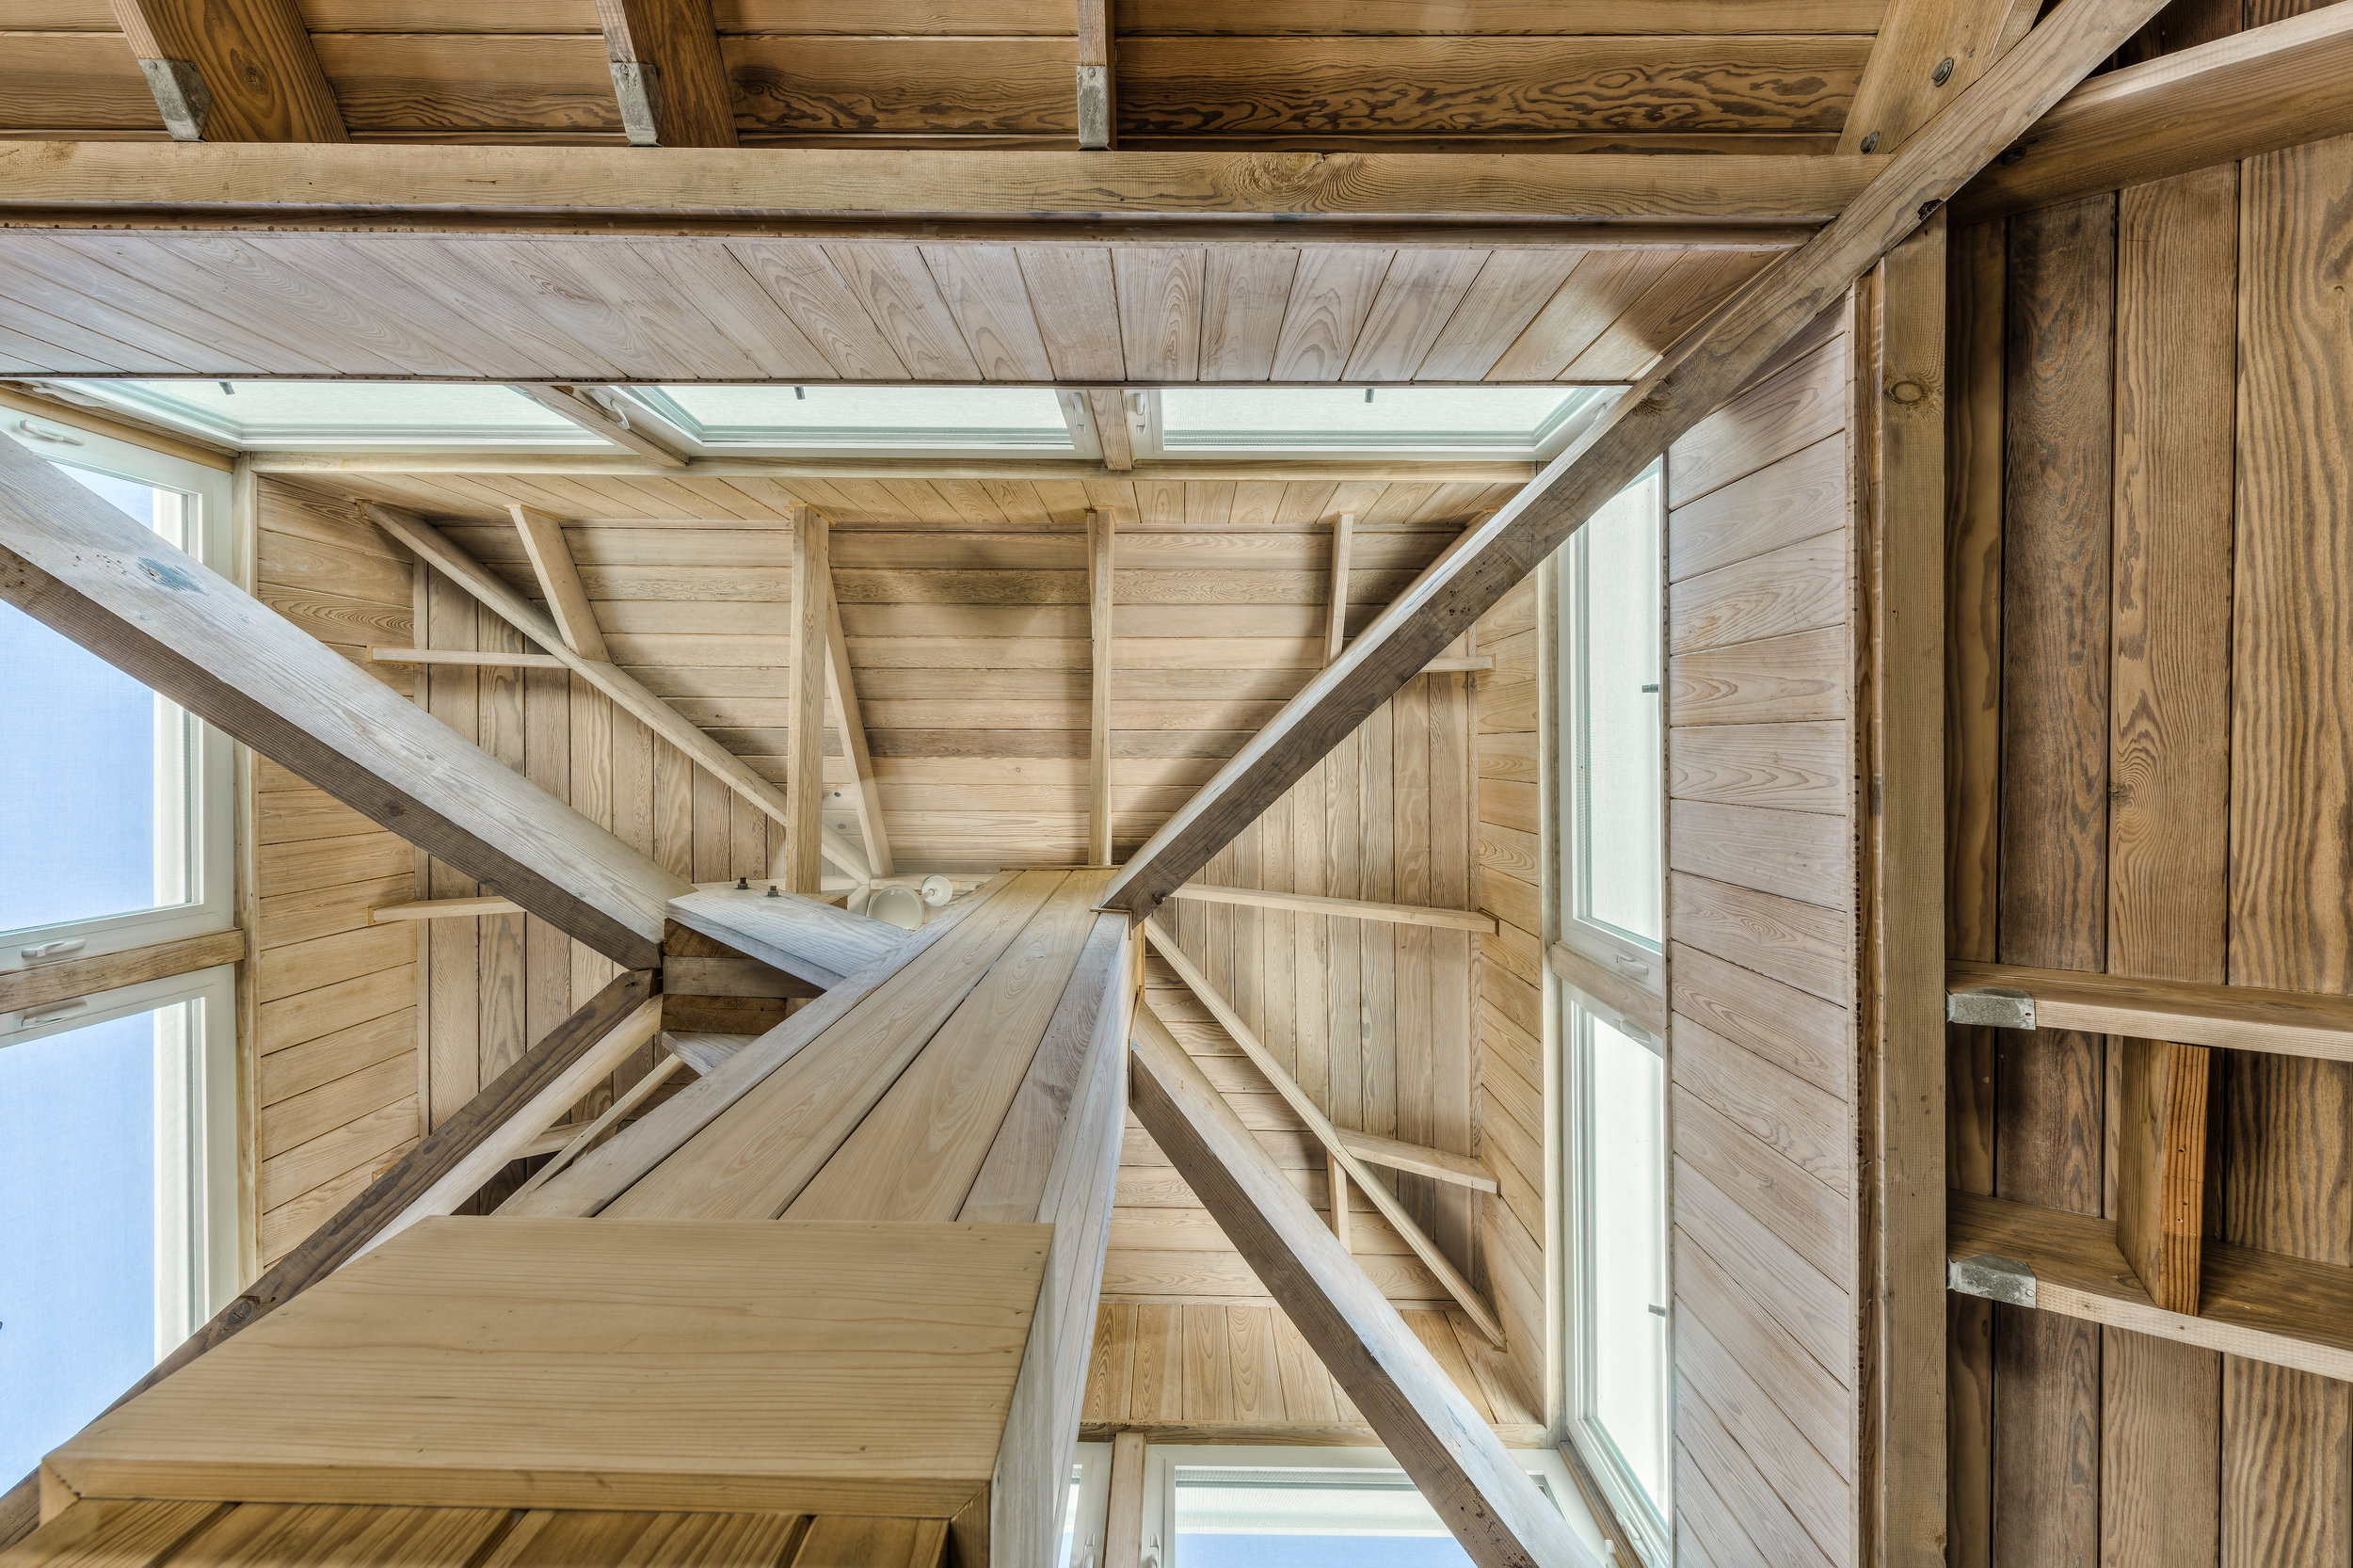 Private Island Beach House View of the architectural ceiling detail after restructuring toward open concept